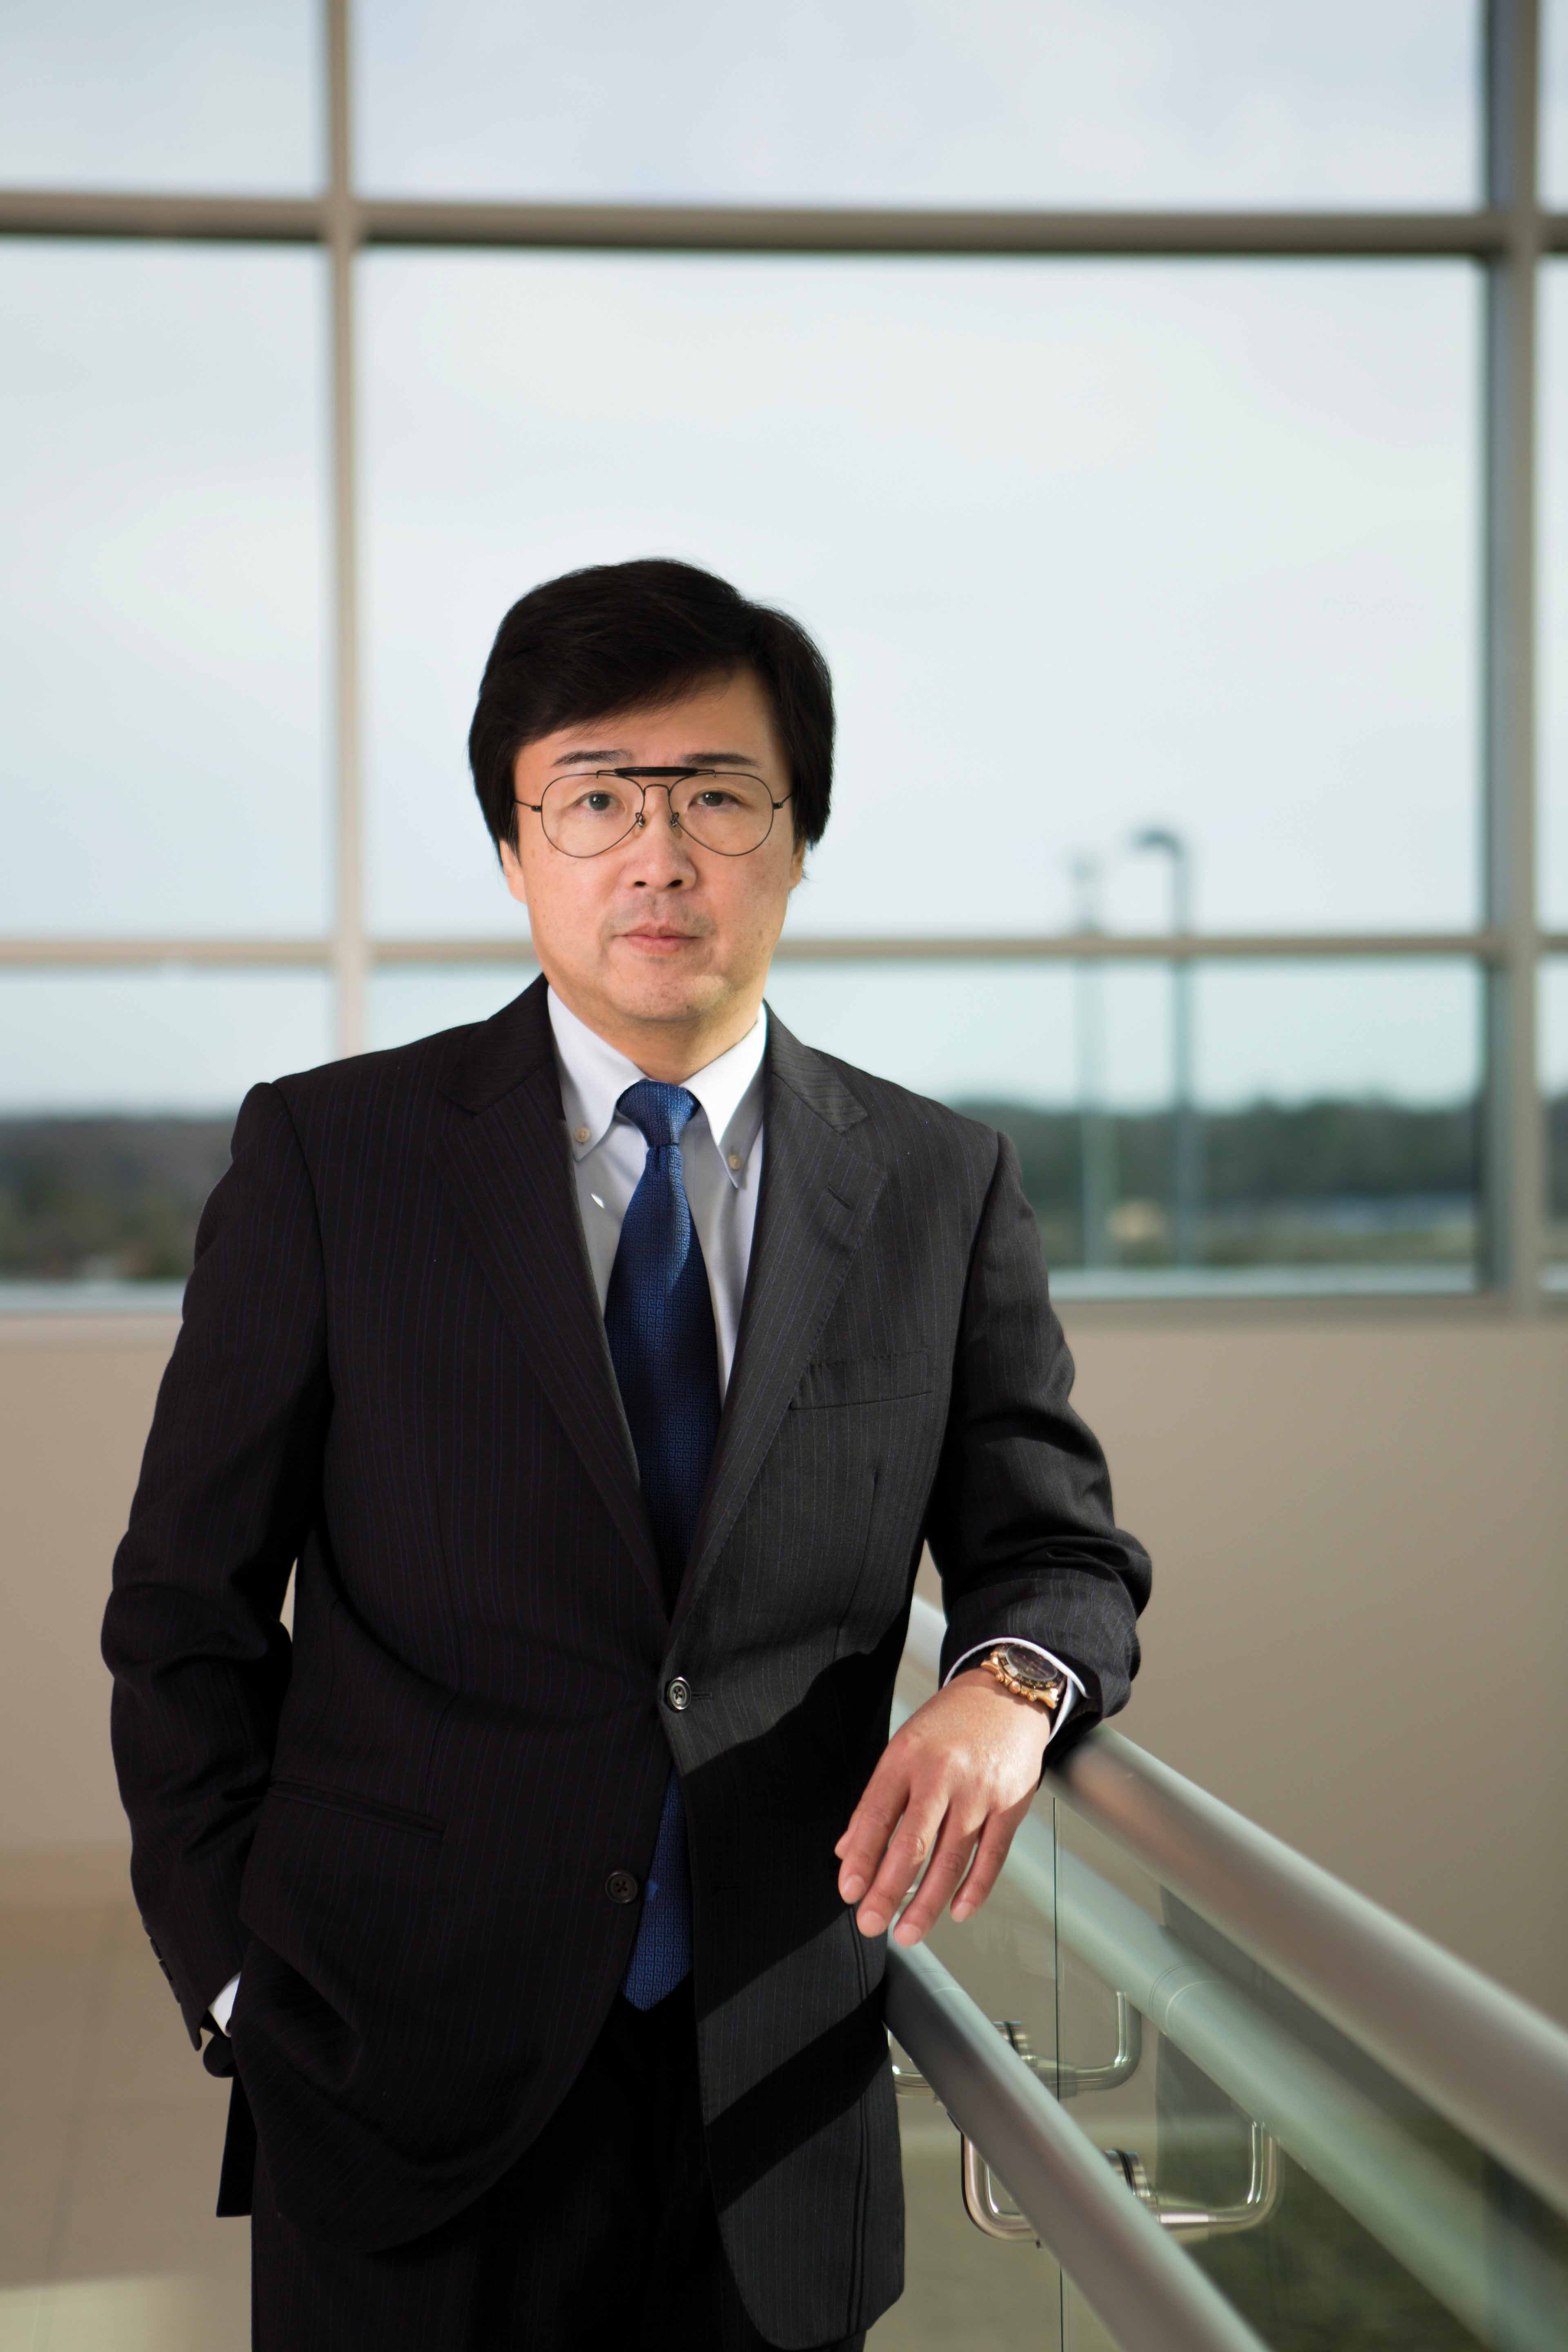 Michimasa Fujino, the man behind light business jet HondaJet, set the bar high for the industry when he did what others thought as impractical: mount engines over the aircraft's wings at optimal positions, successfully lowering wave drag and cabin noise, and allowing for more cabin space